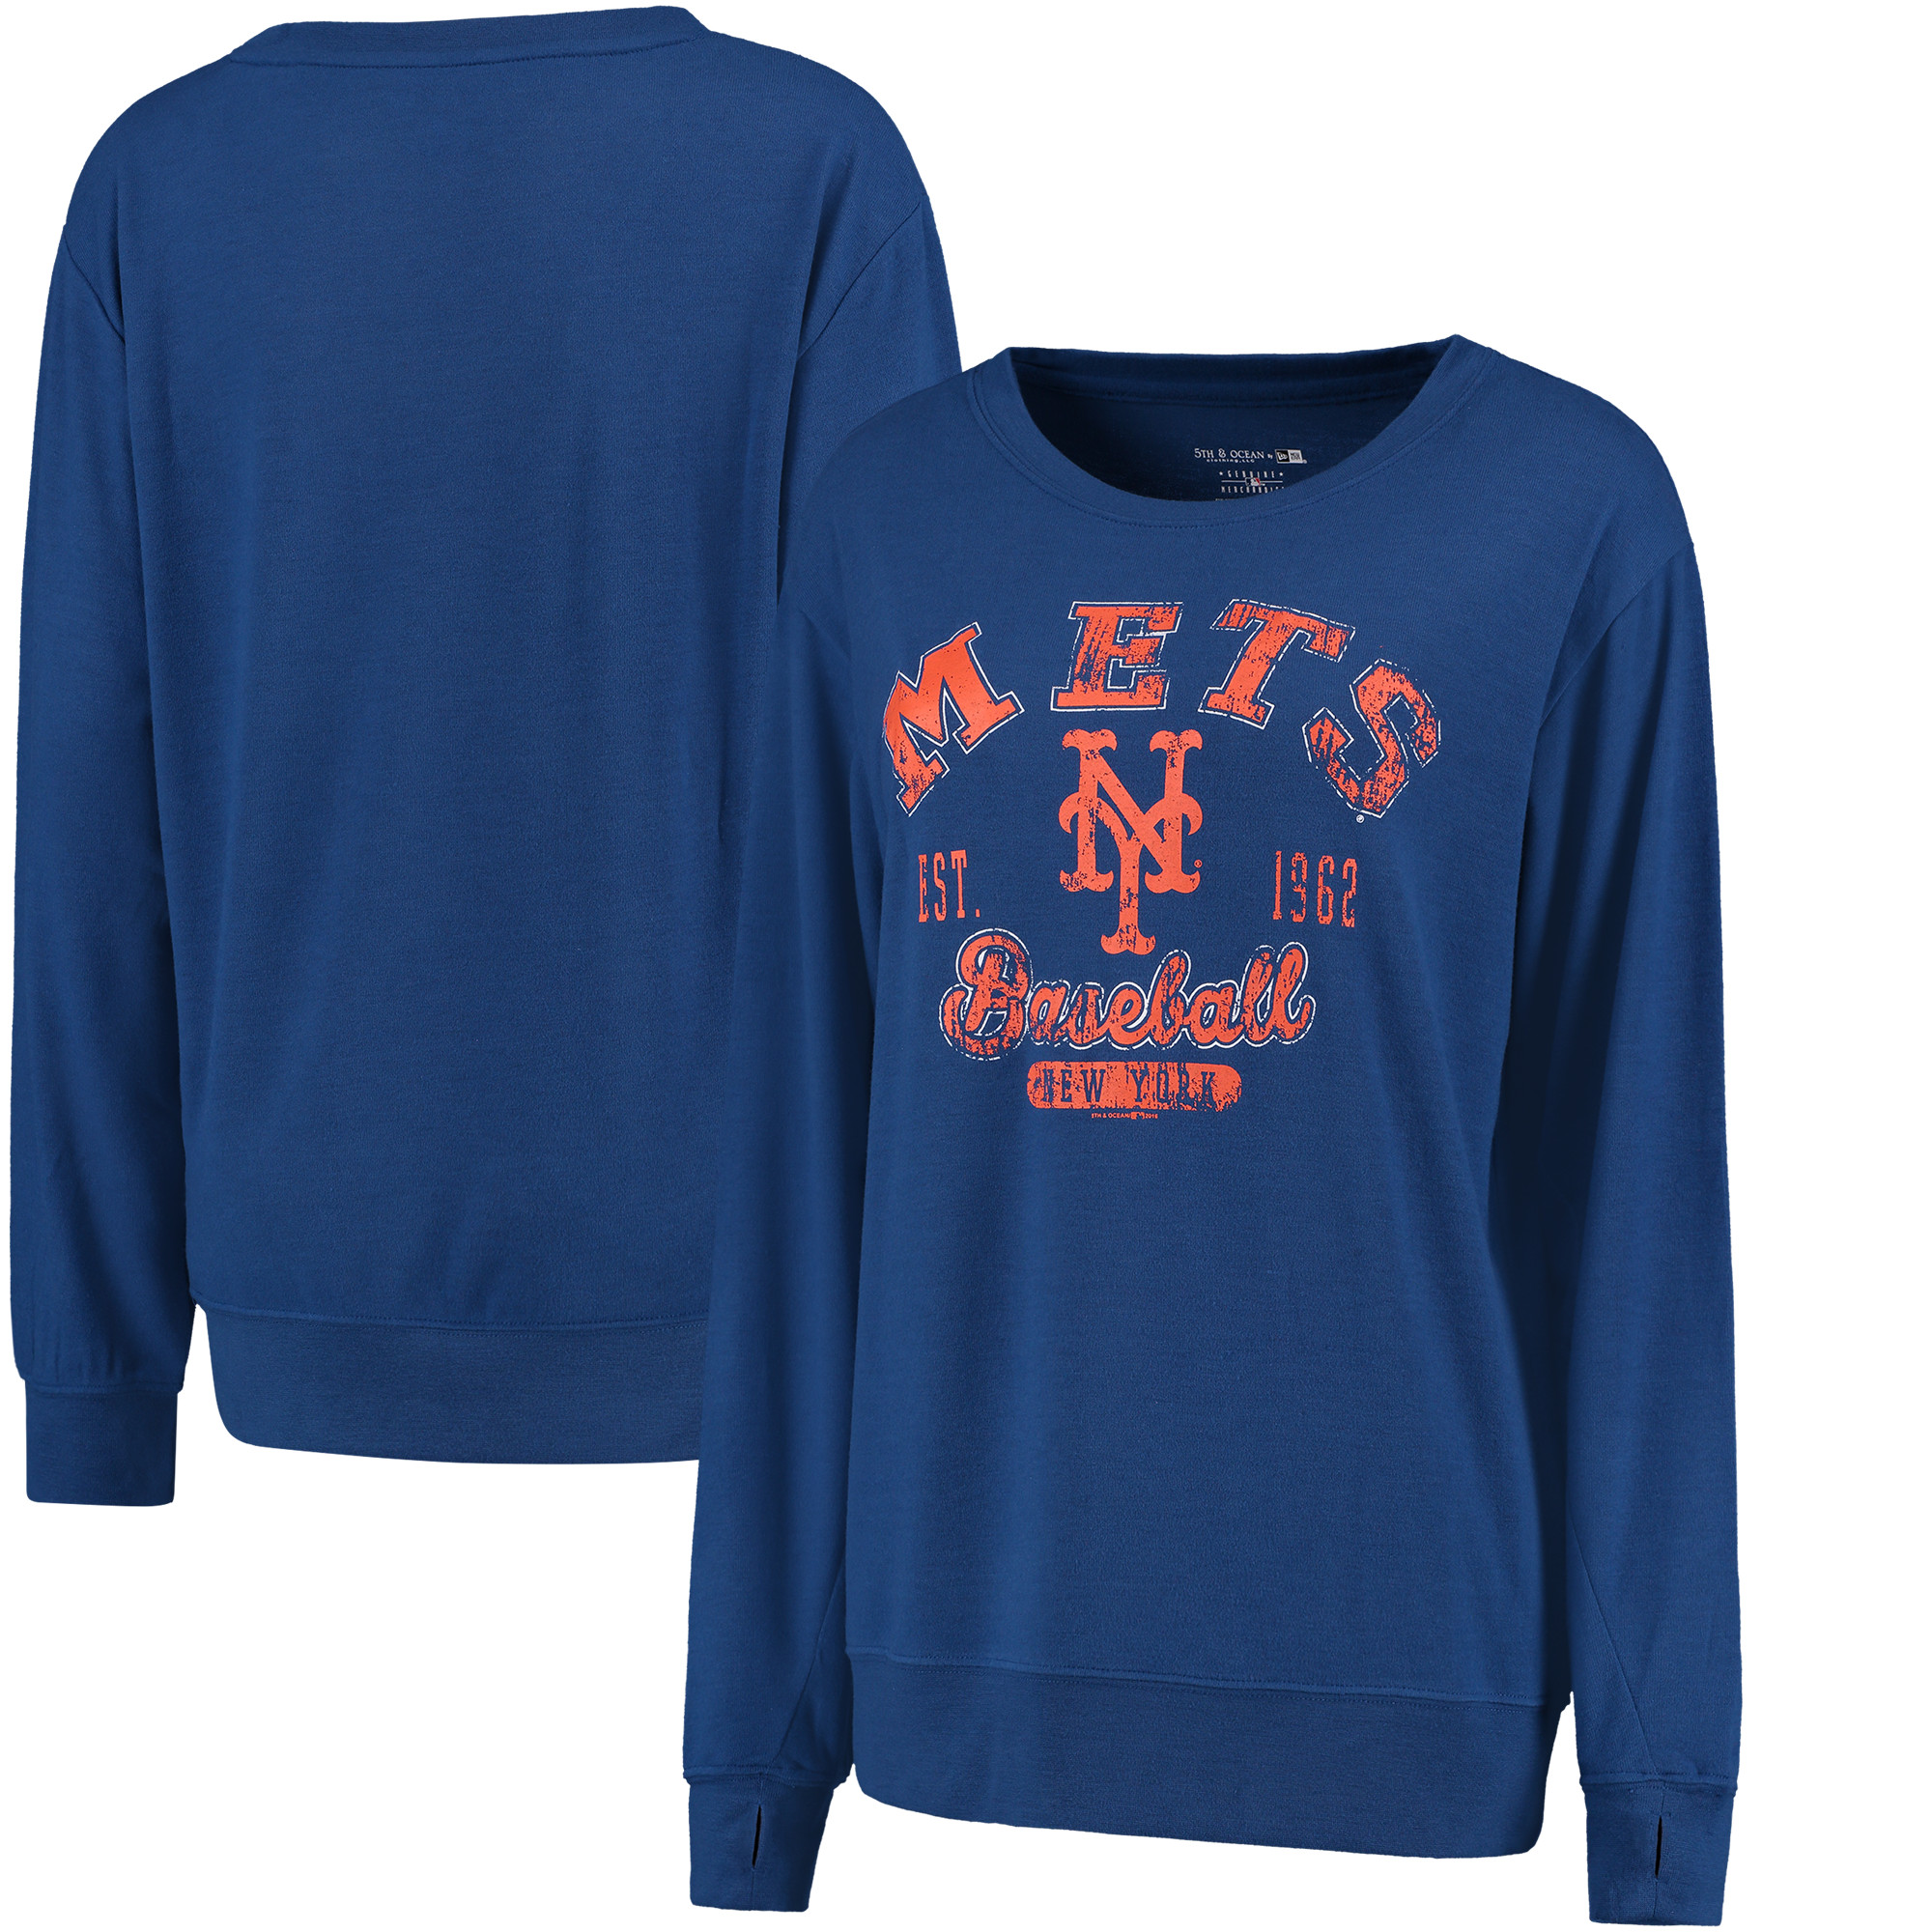 New York Mets 5th & Ocean by New Era Women's Knit Pullover Tri-Blend Sweatshirt - Royal